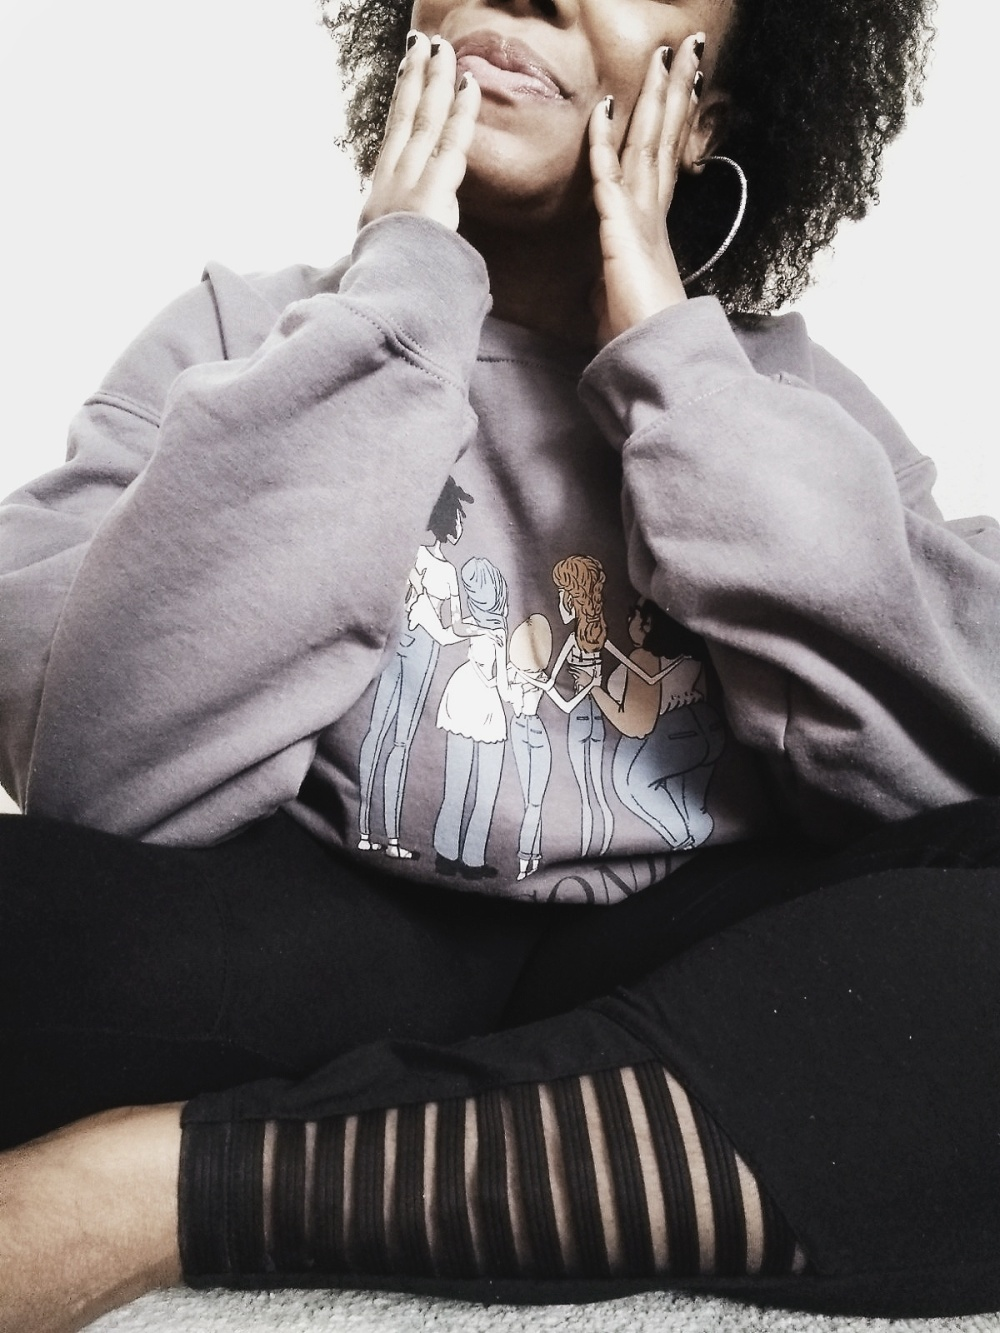 SHEICONIC Clothing Line Represents Various Different Body Types